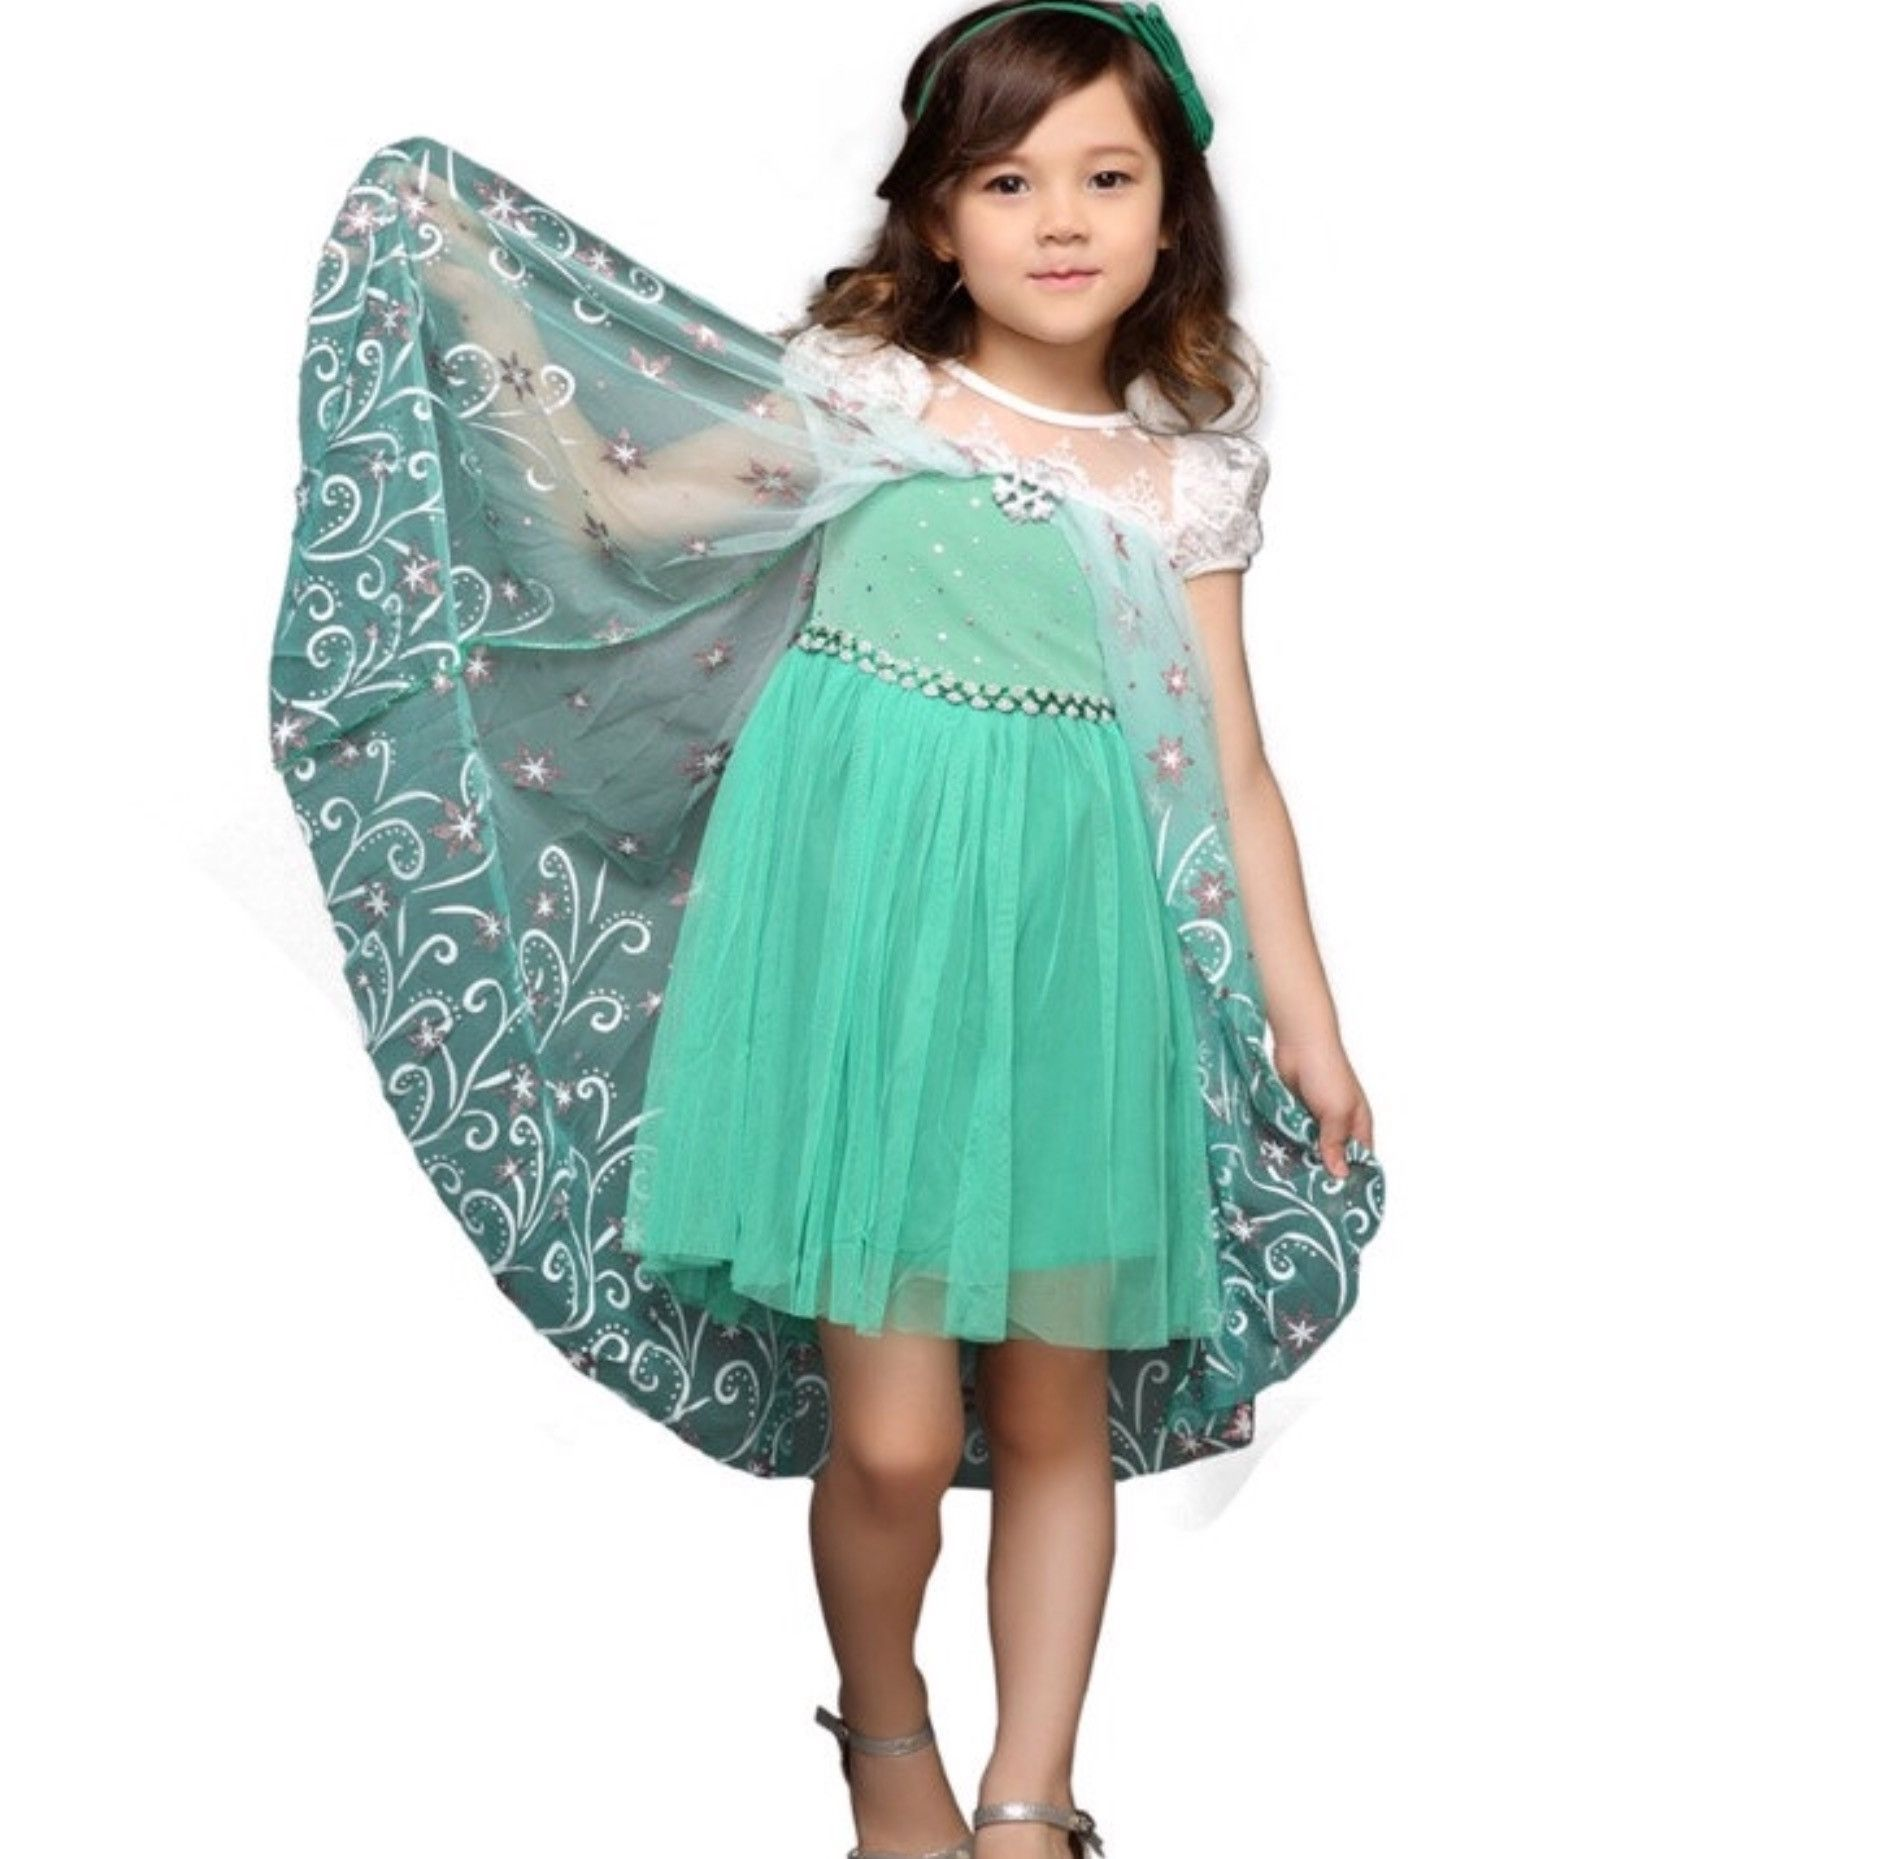 Frozen Fever Party Dress! Perfect for playing dress up, costume ...